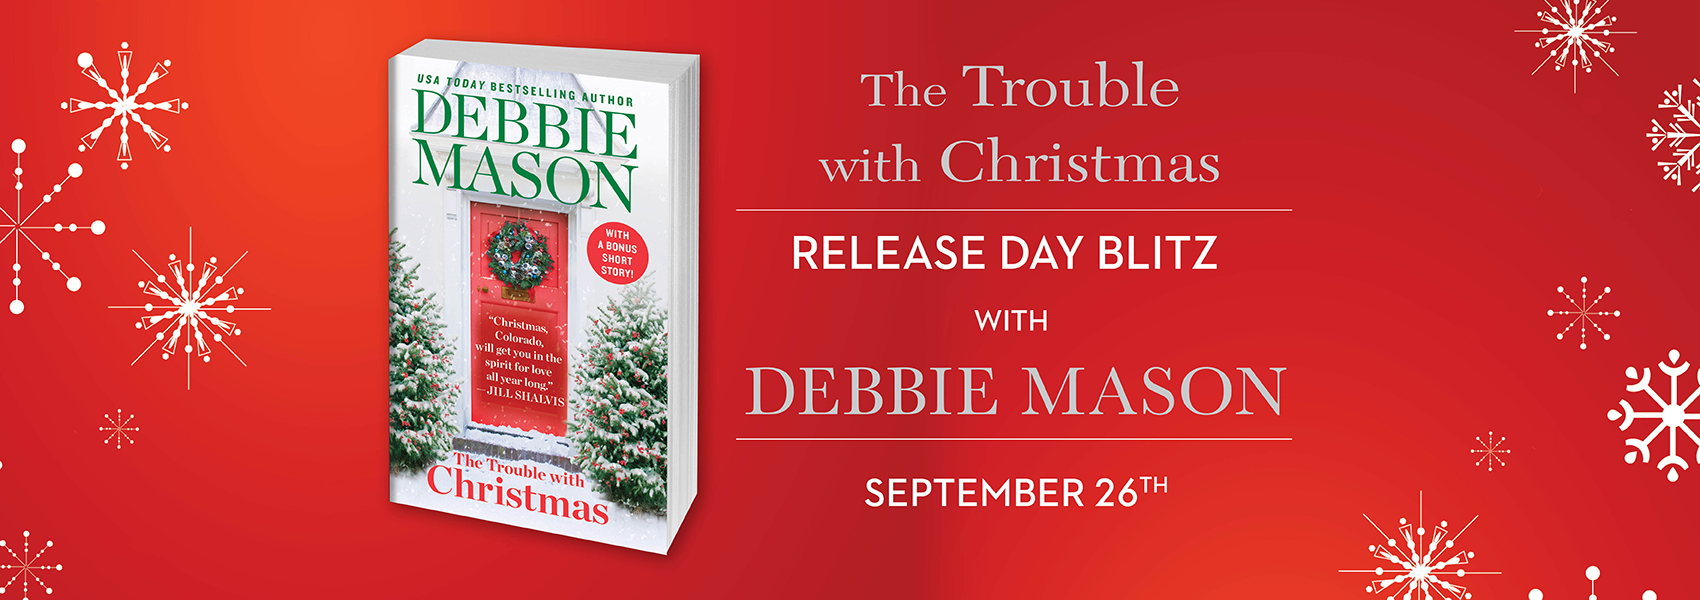 win 1 of 15 free ebook downloads of The Trouble with Christmas!